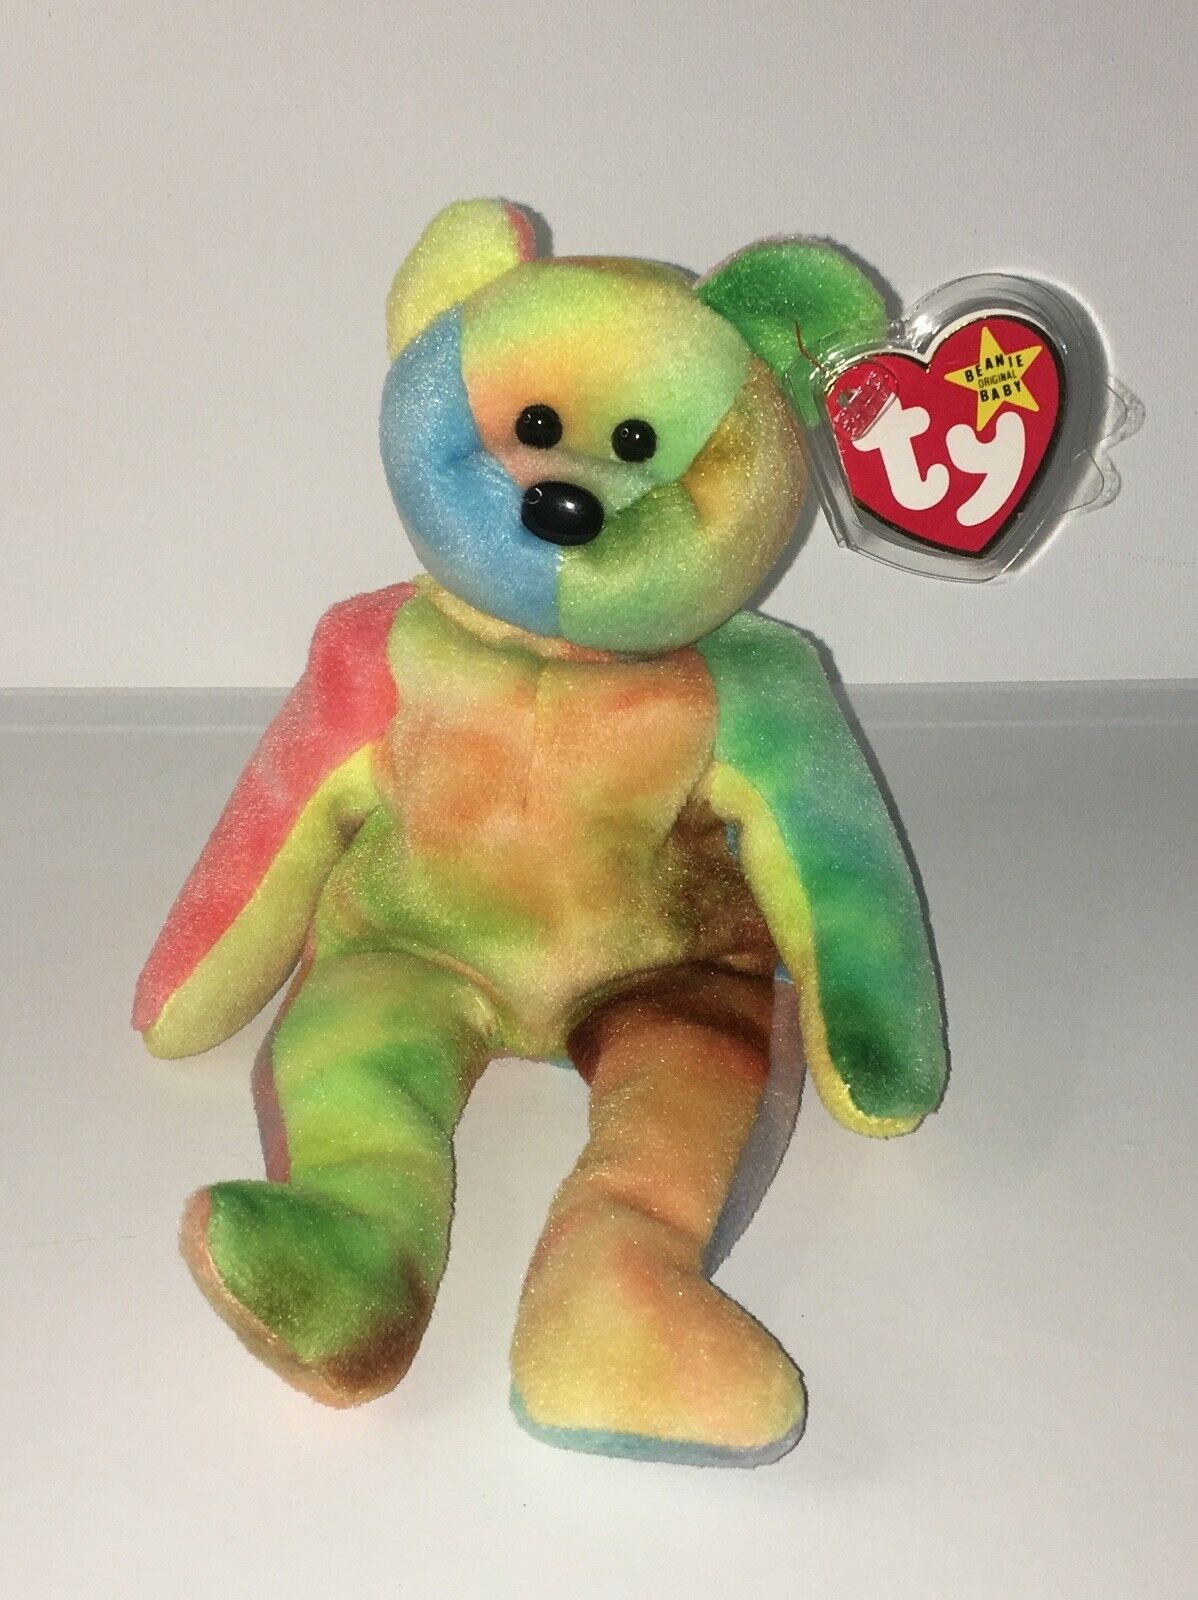 BRAND NEW RARE Ty 1995 Garcia Bear Retired Collectable Mint Condition